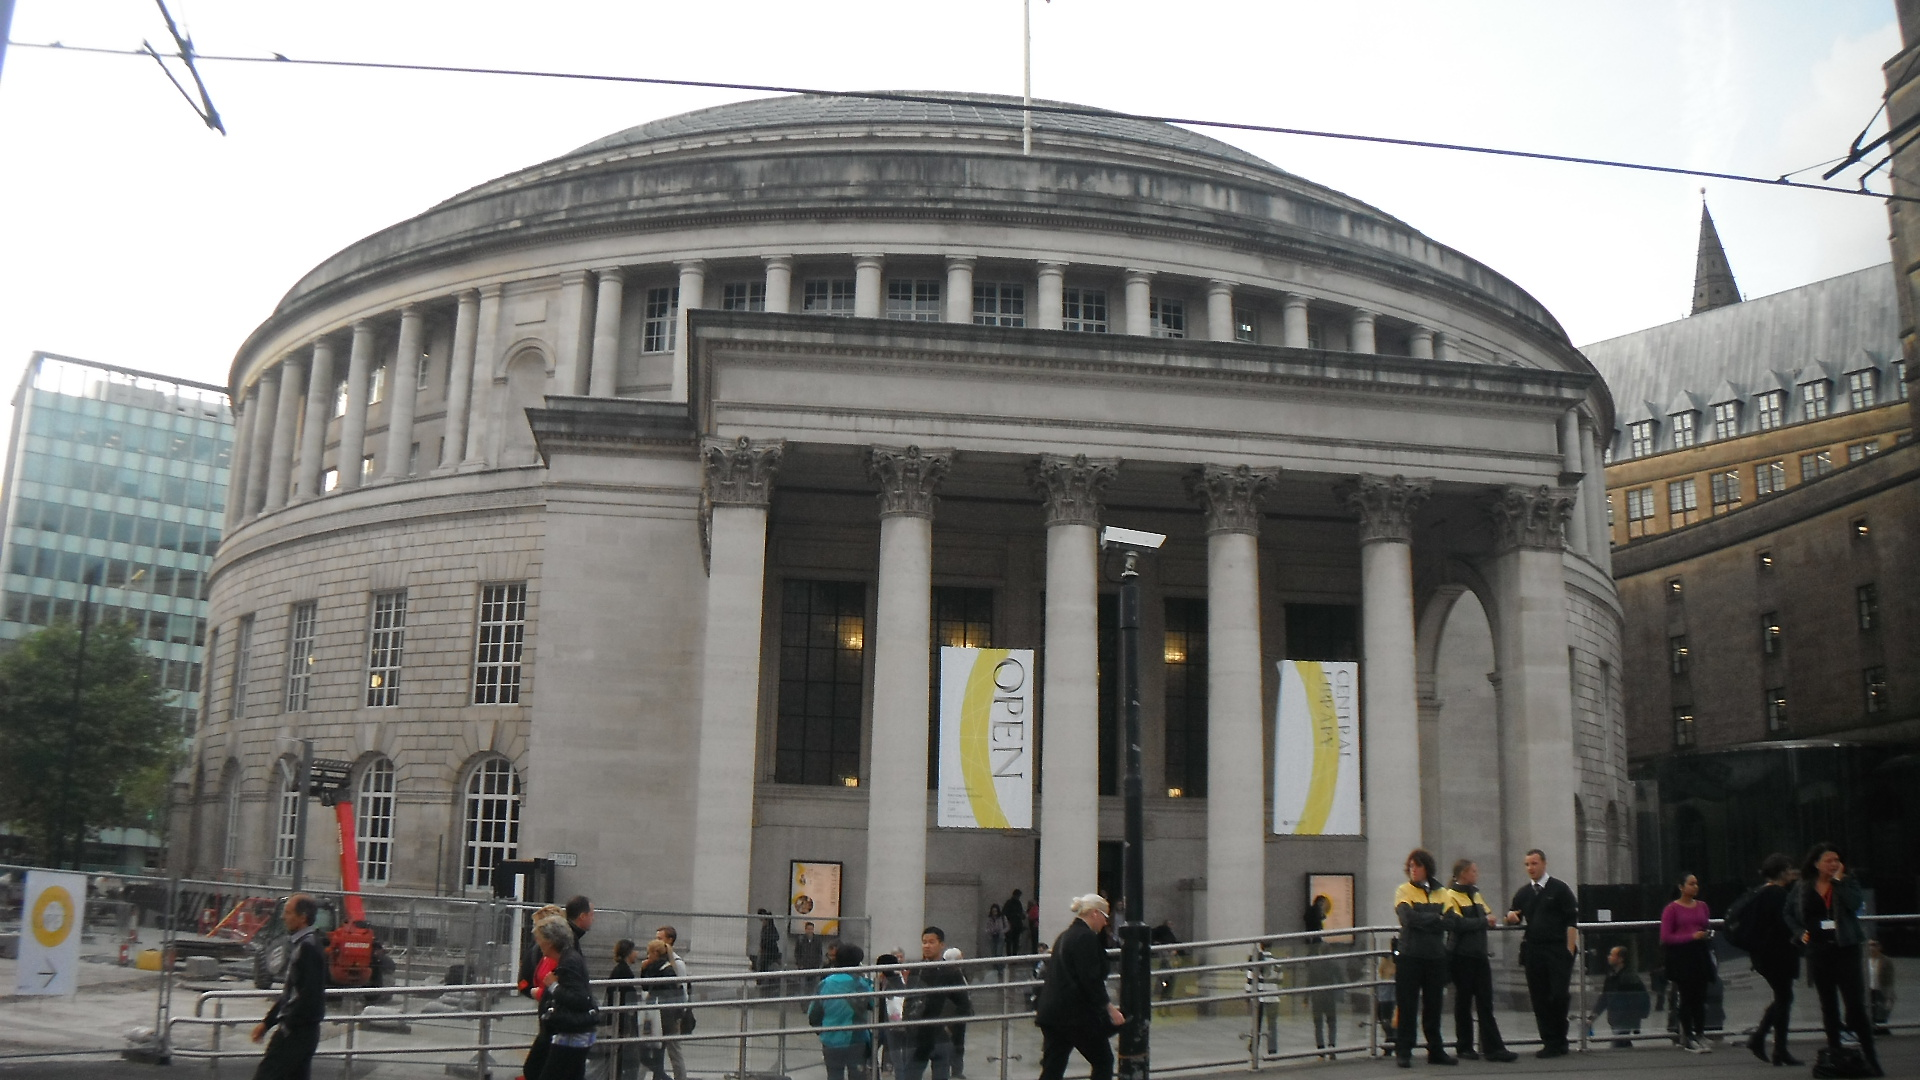 Photo taken by me  - Manchester Central Library